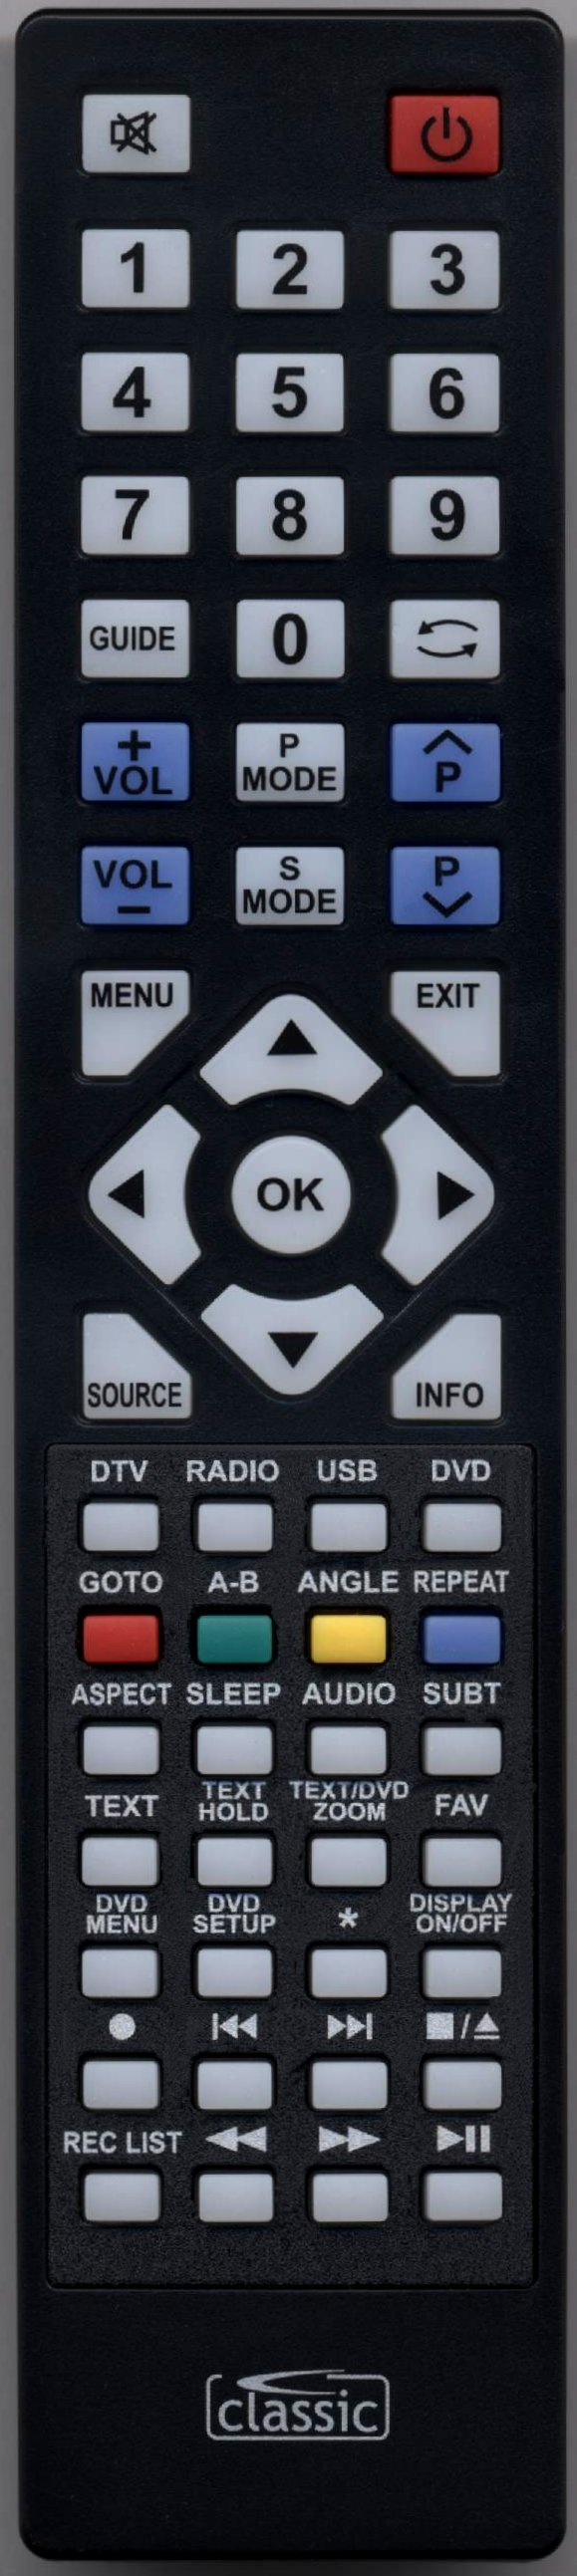 BLAUPUNKT 40/123J-GB-3B2-FHCDU-UK Remote Control Alternative